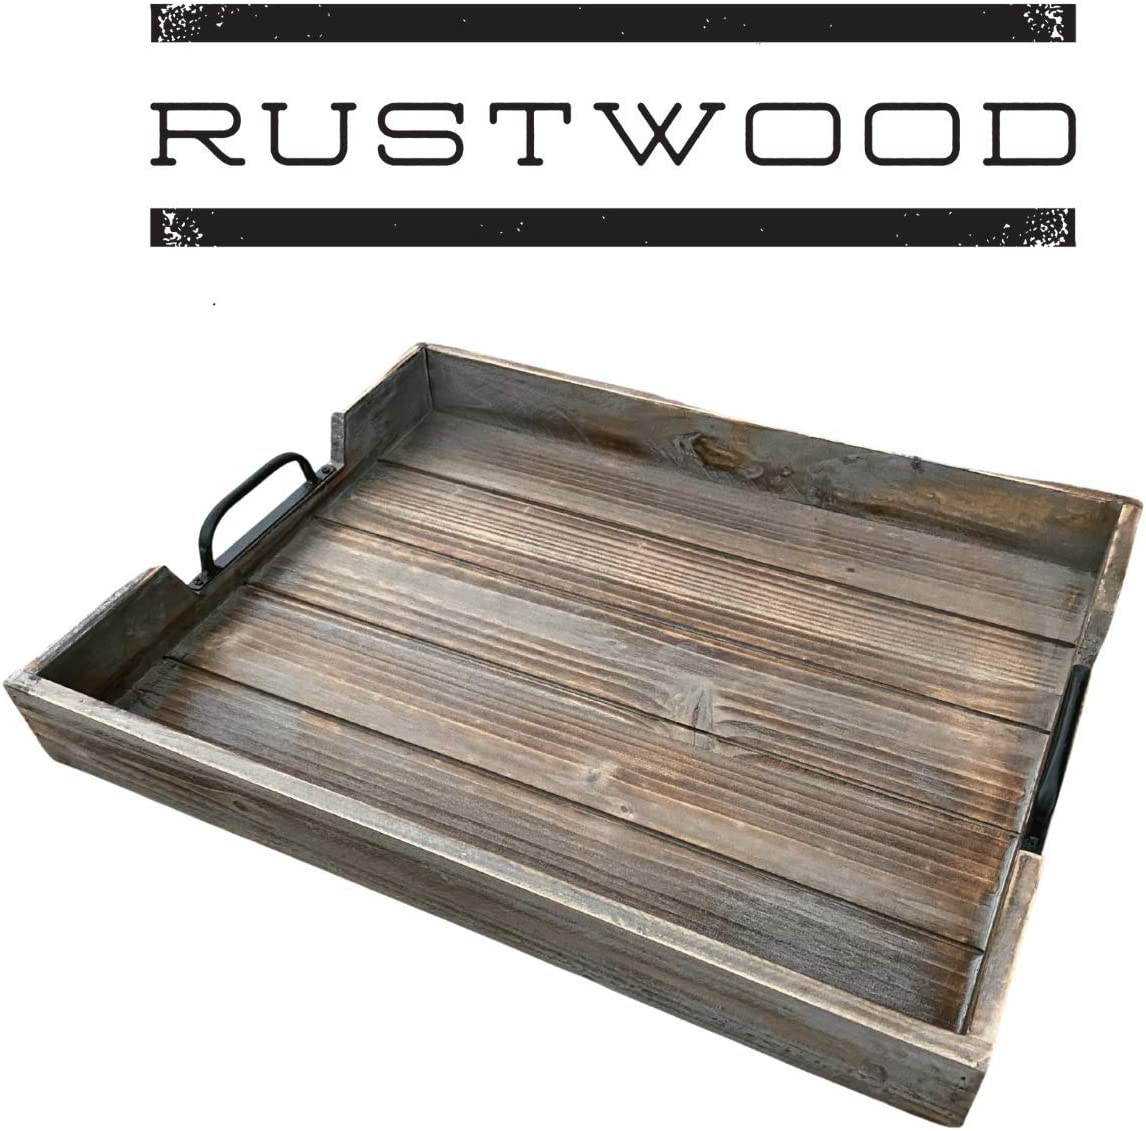 Rustic Wood Tray with Black Handles - Serving Tray & Coffee Table Tray - Ottoman Tray & Decorative Tray - Made with Pine Wood - Rustic Torched Tray for Home Decor and Kitchen Decor - Rustwood (Grey)